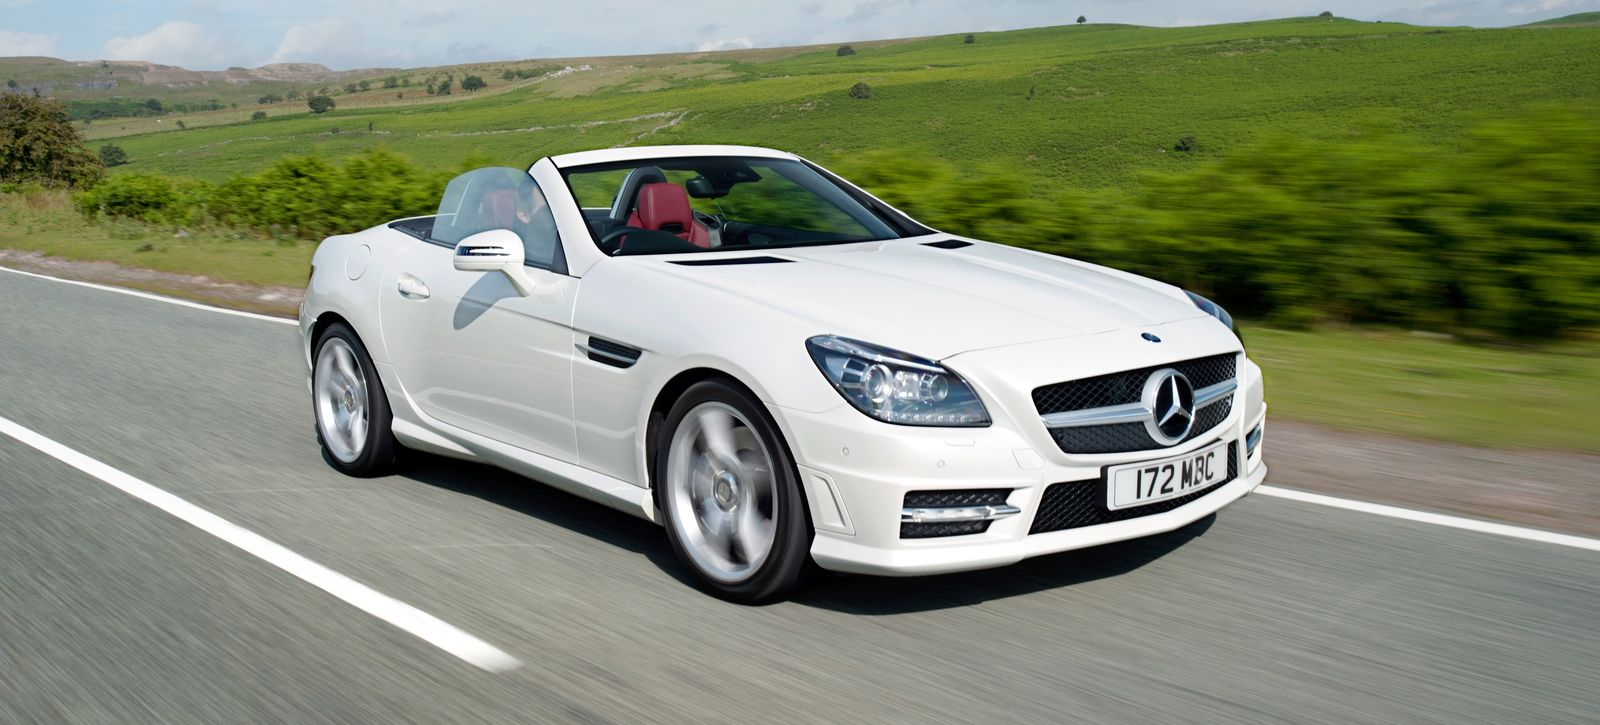 The UK's cheapest convertible sports cars | carwow